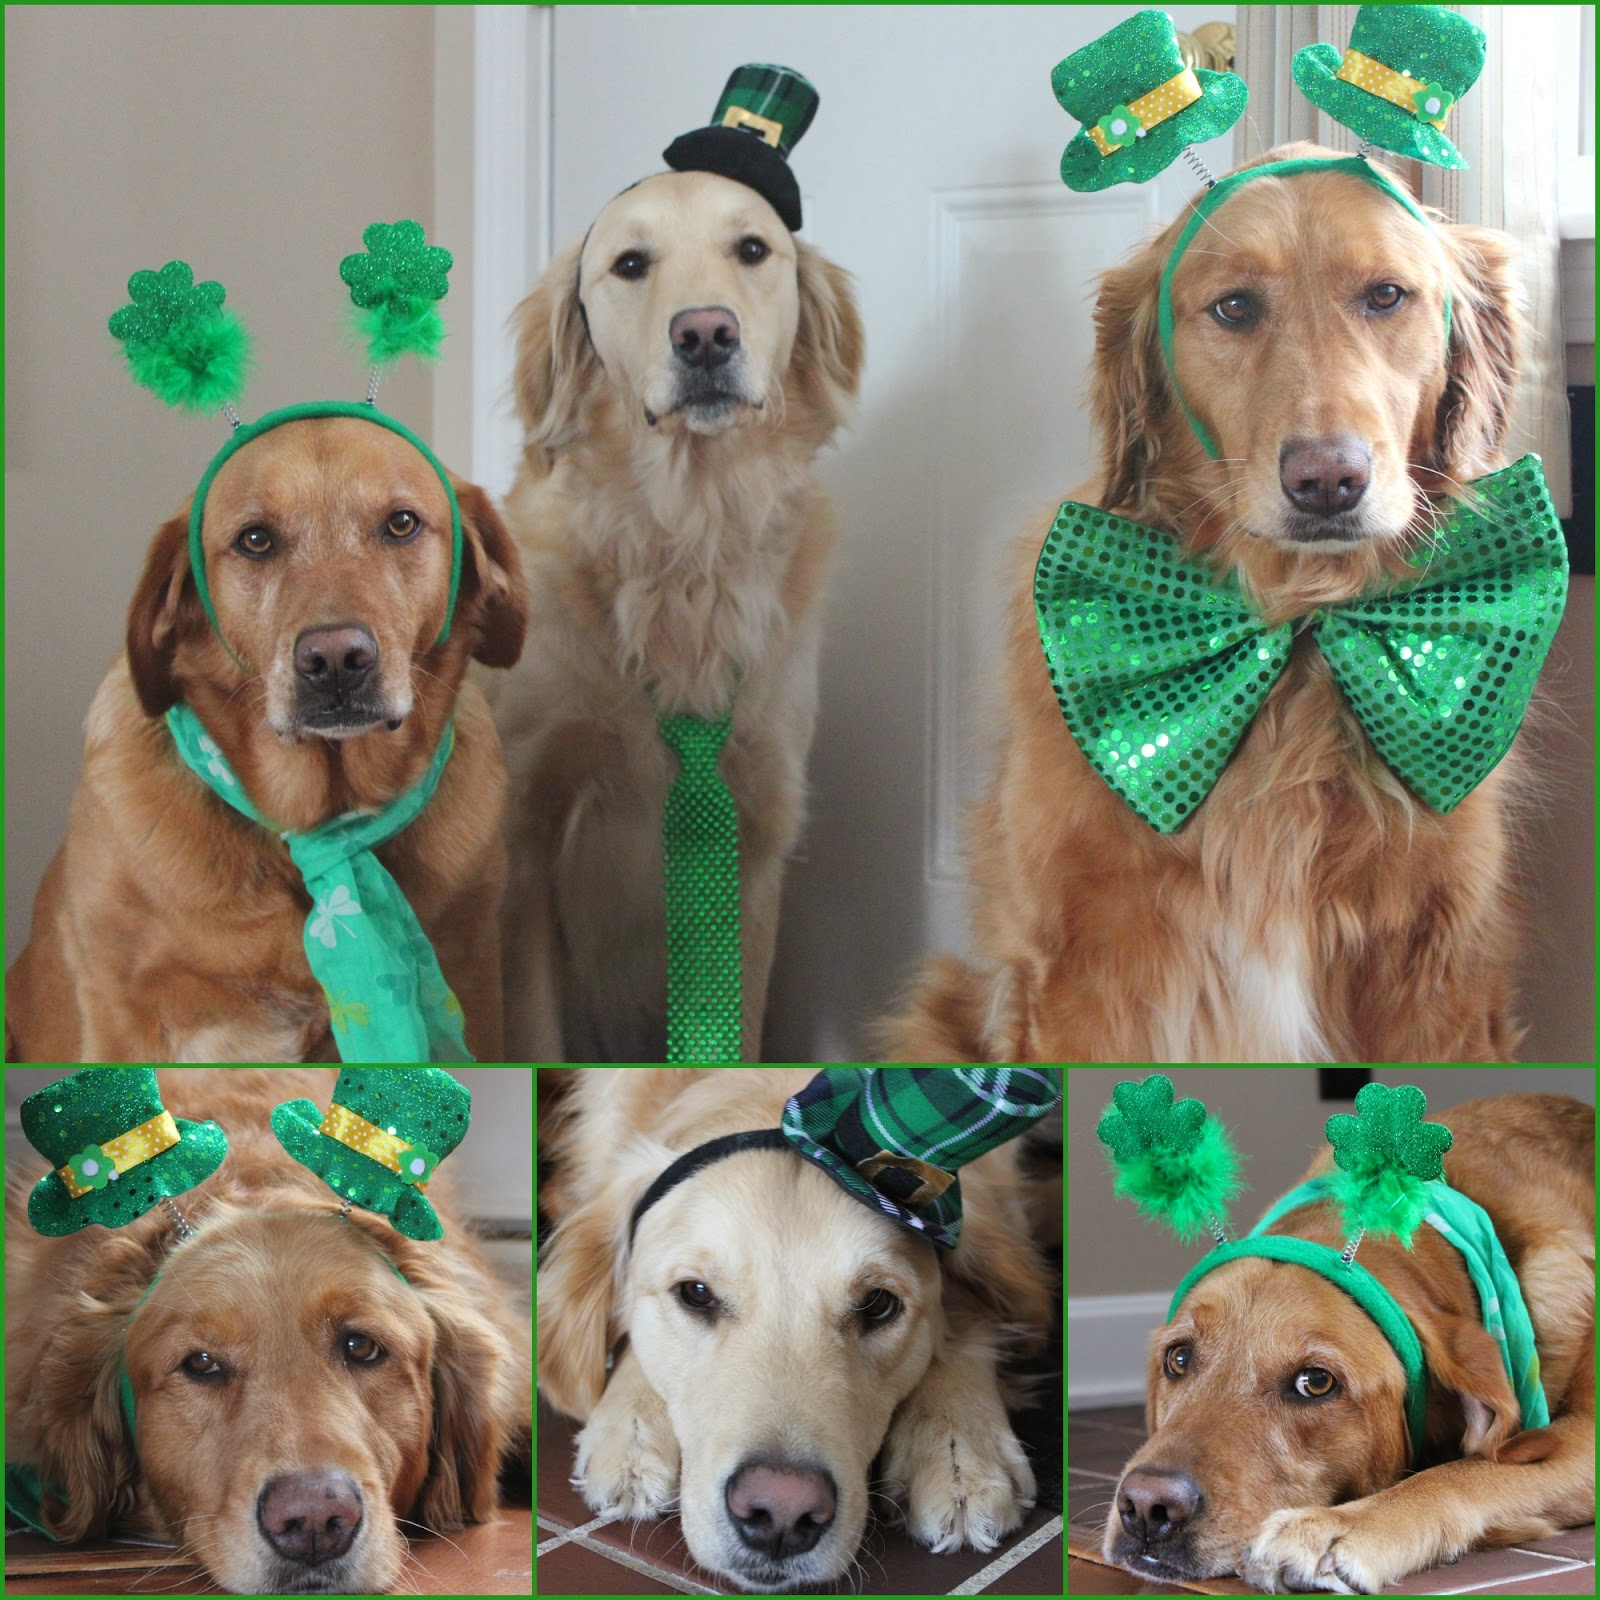 dogs dressed up for st patricks day